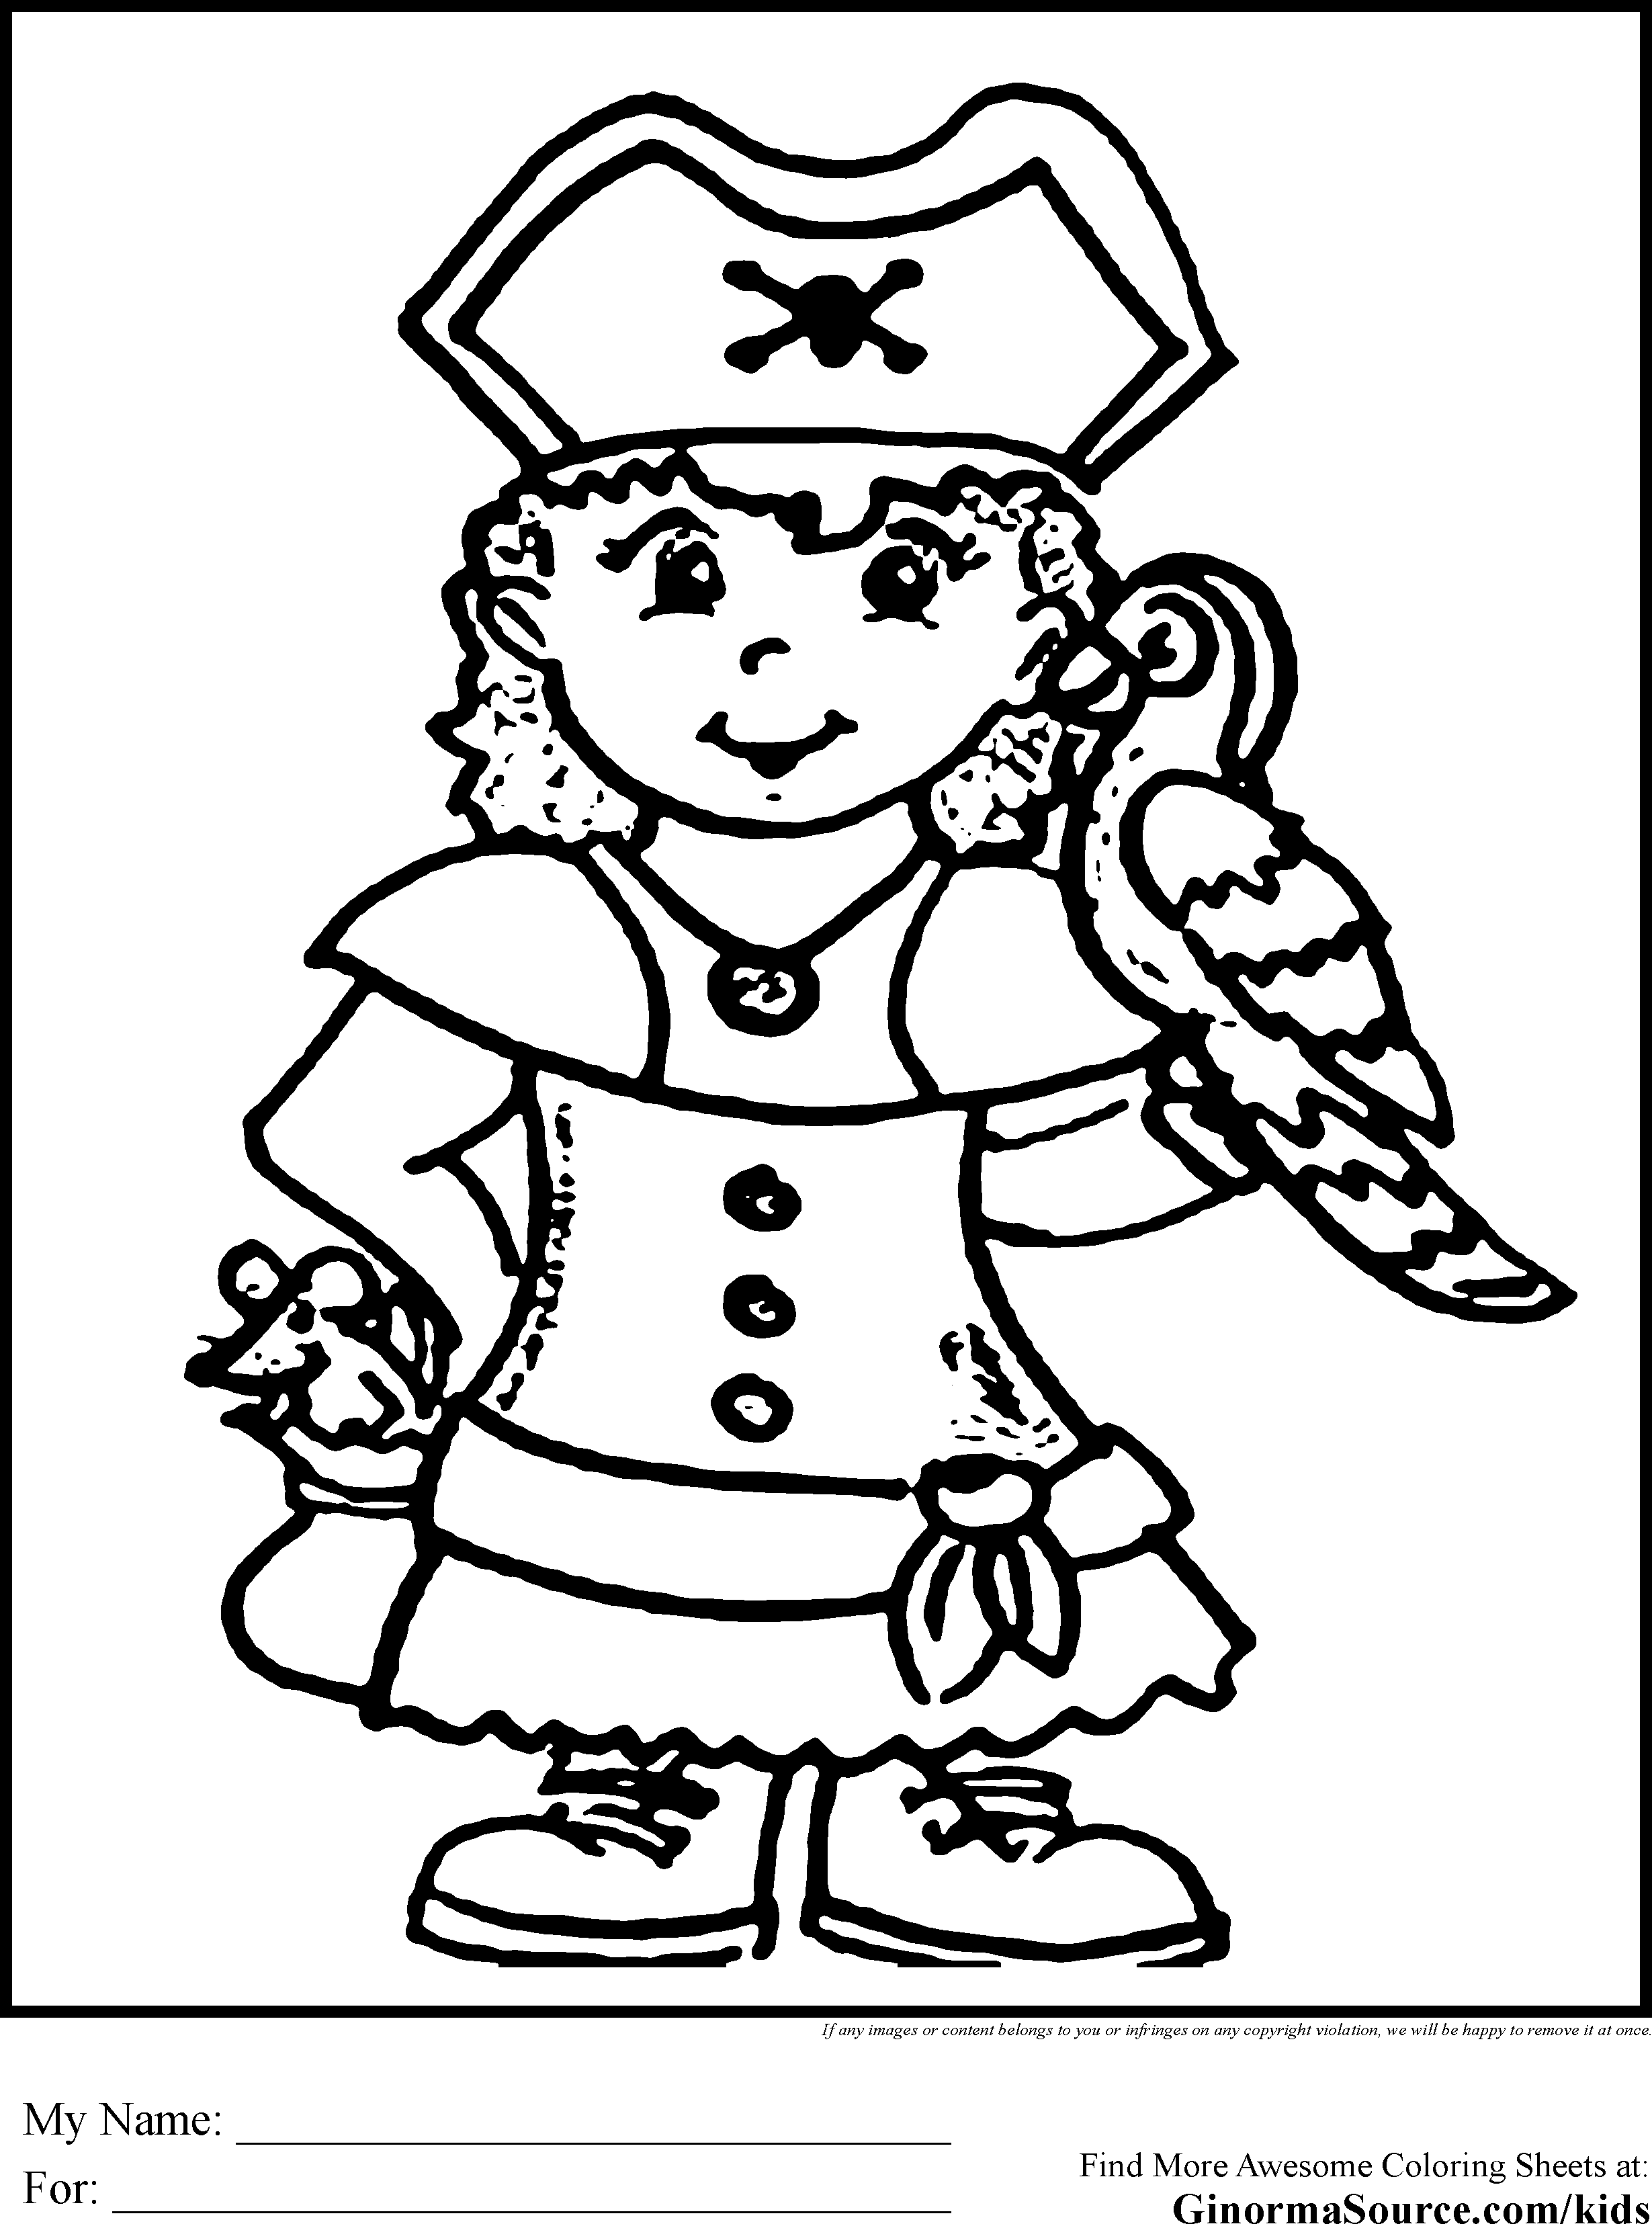 Coloring Pages Pirate Color Page girl pirate coloring page az pages ginormasource kids